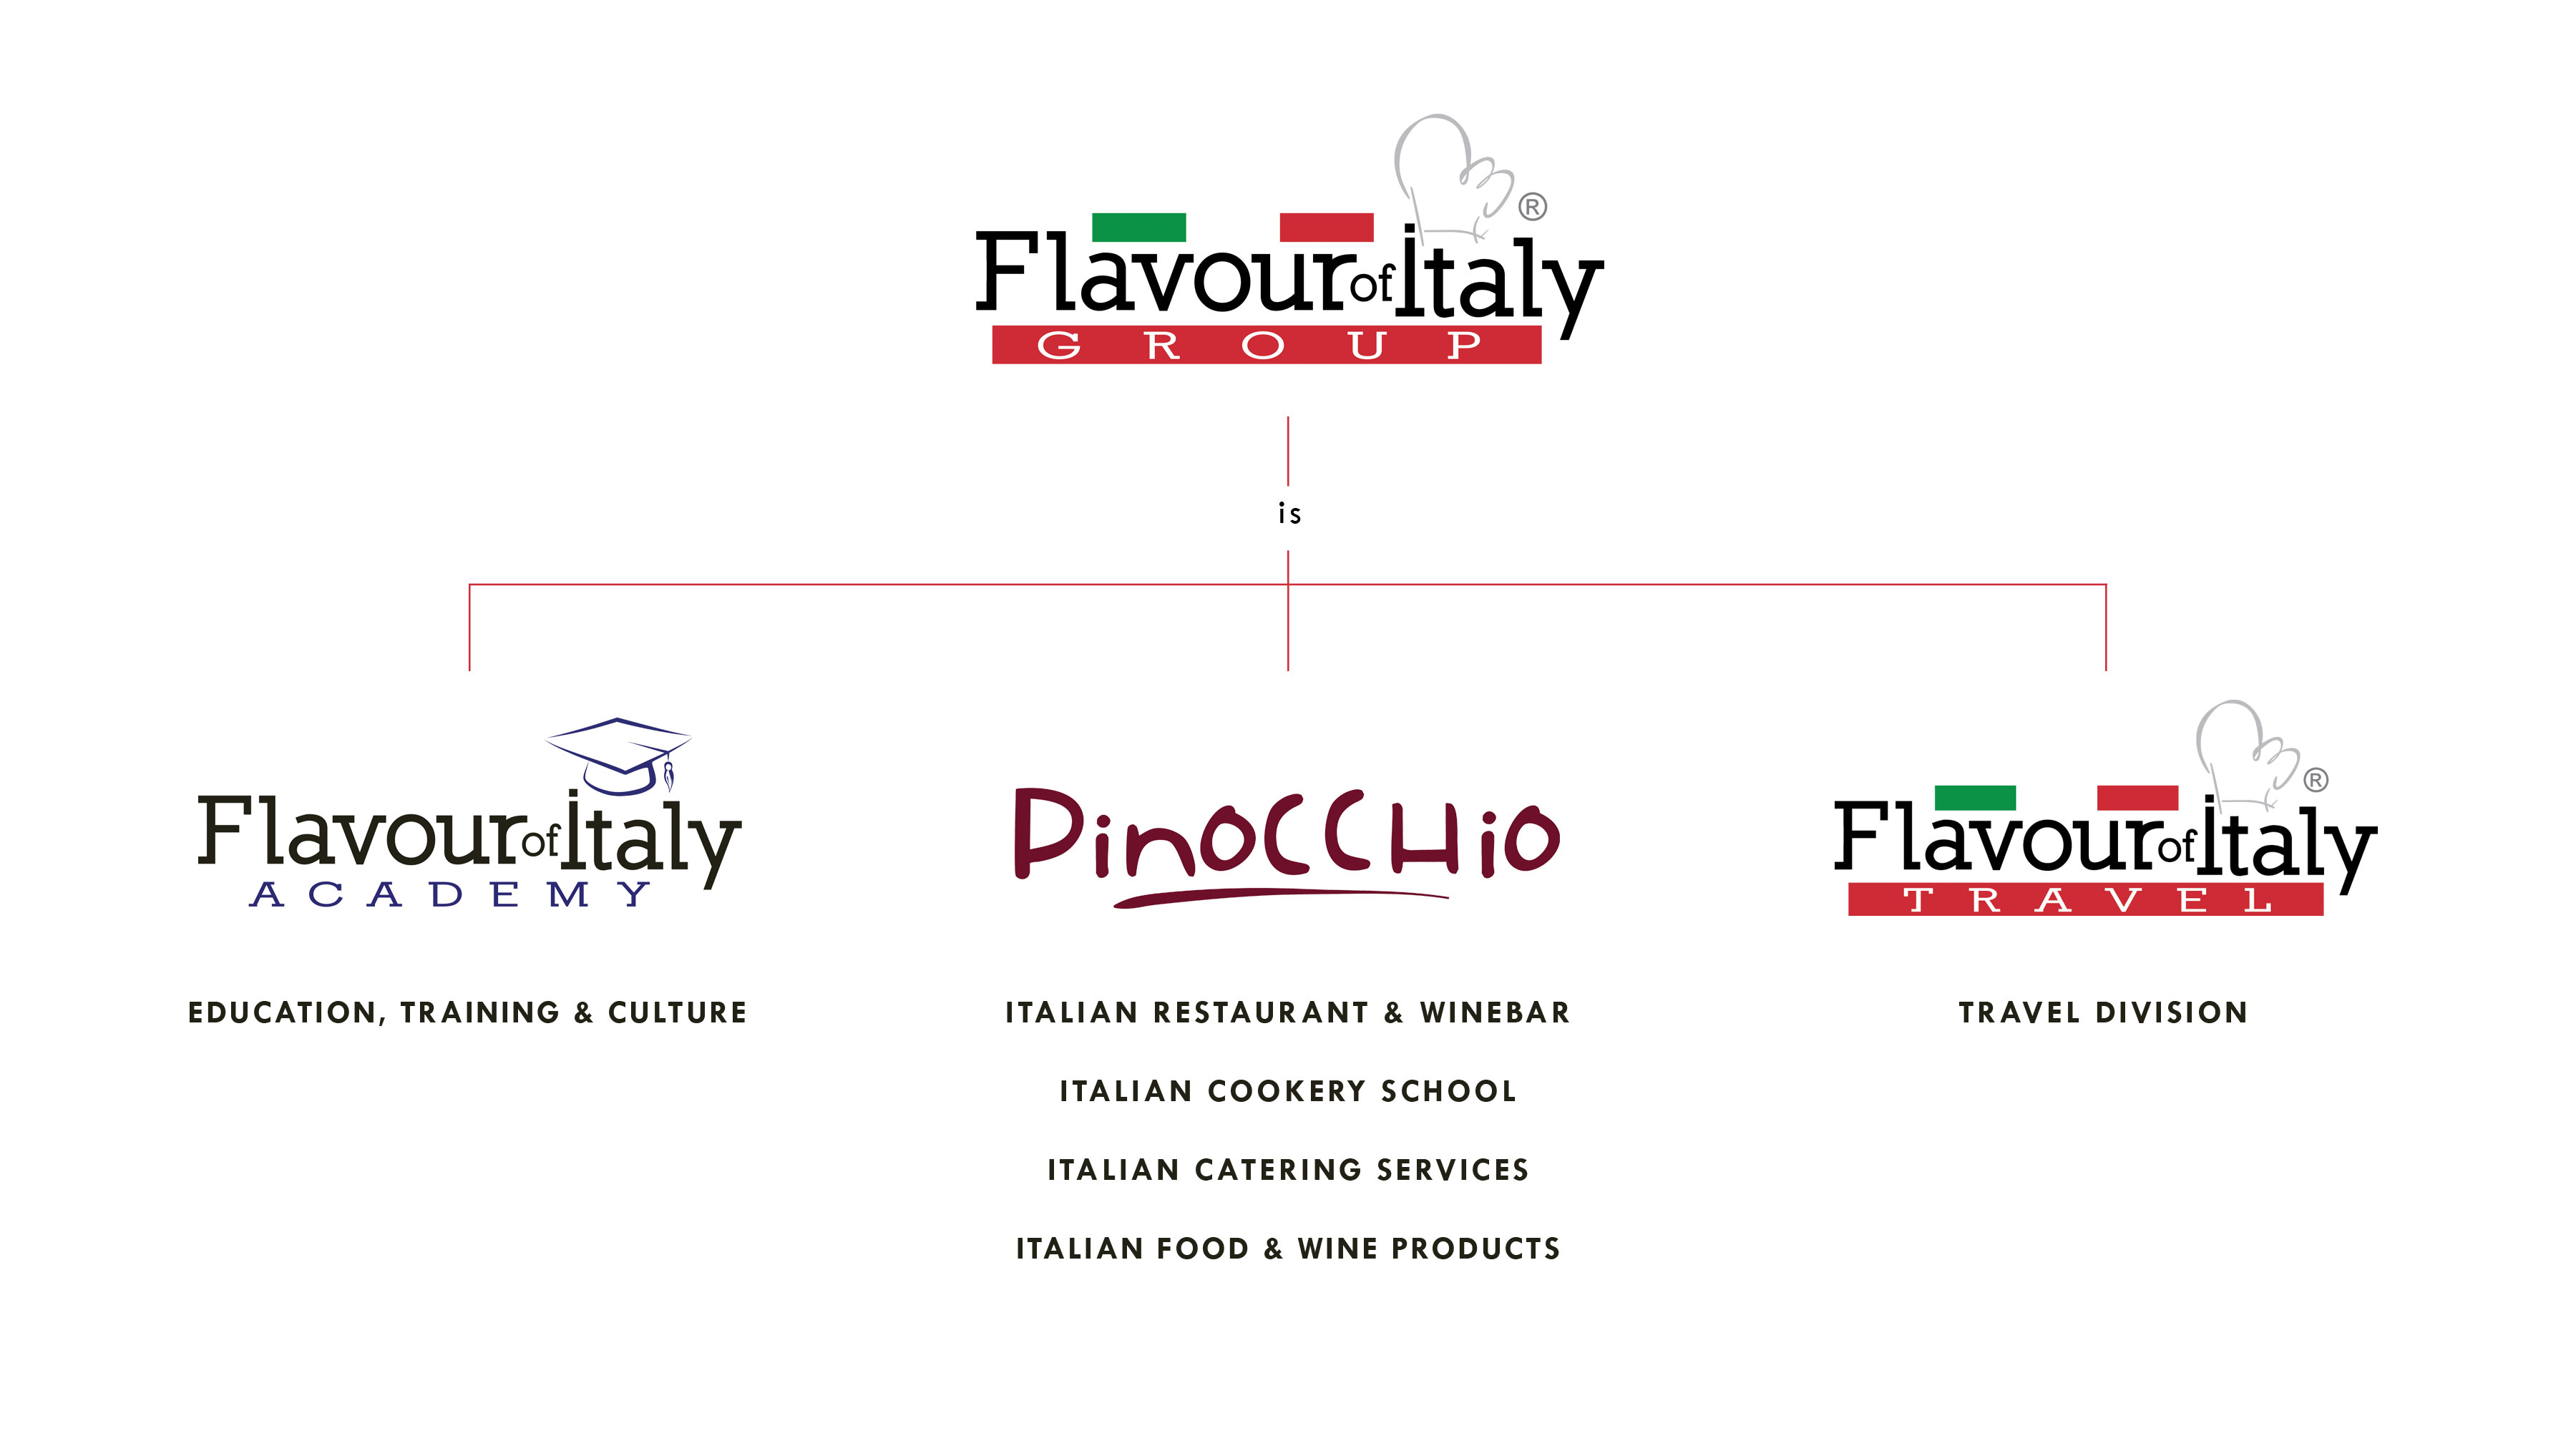 Flavour of Italy Group activities